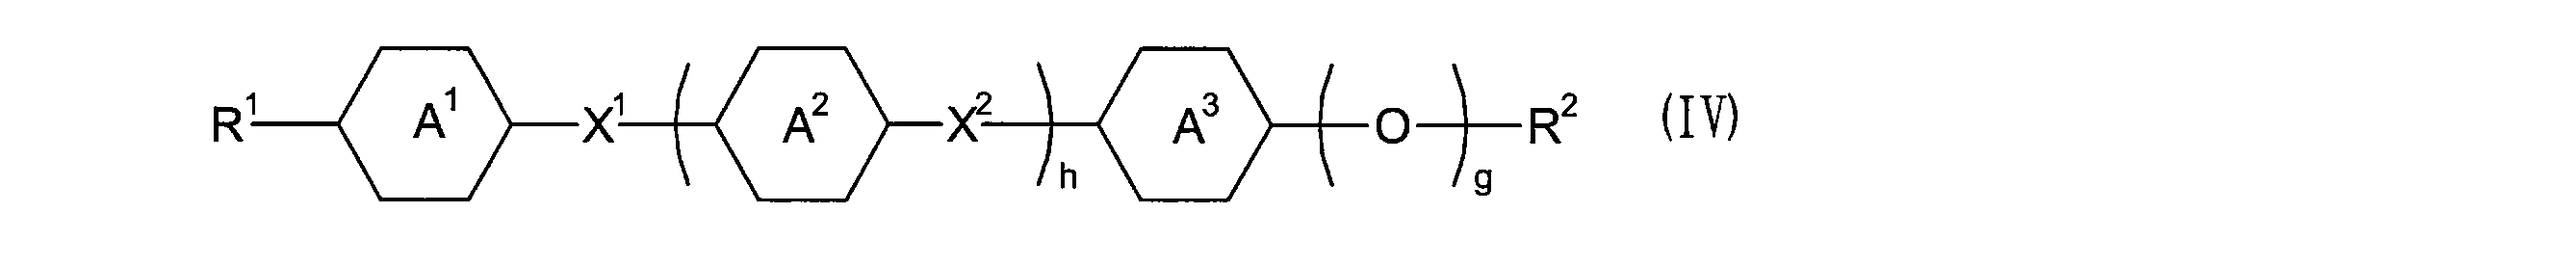 WO2011062017A1 - Liquid crystal composition comprising polymerizable compound, and liquid crystal display element using said liquid crystal composition         - Google PatentsFamily